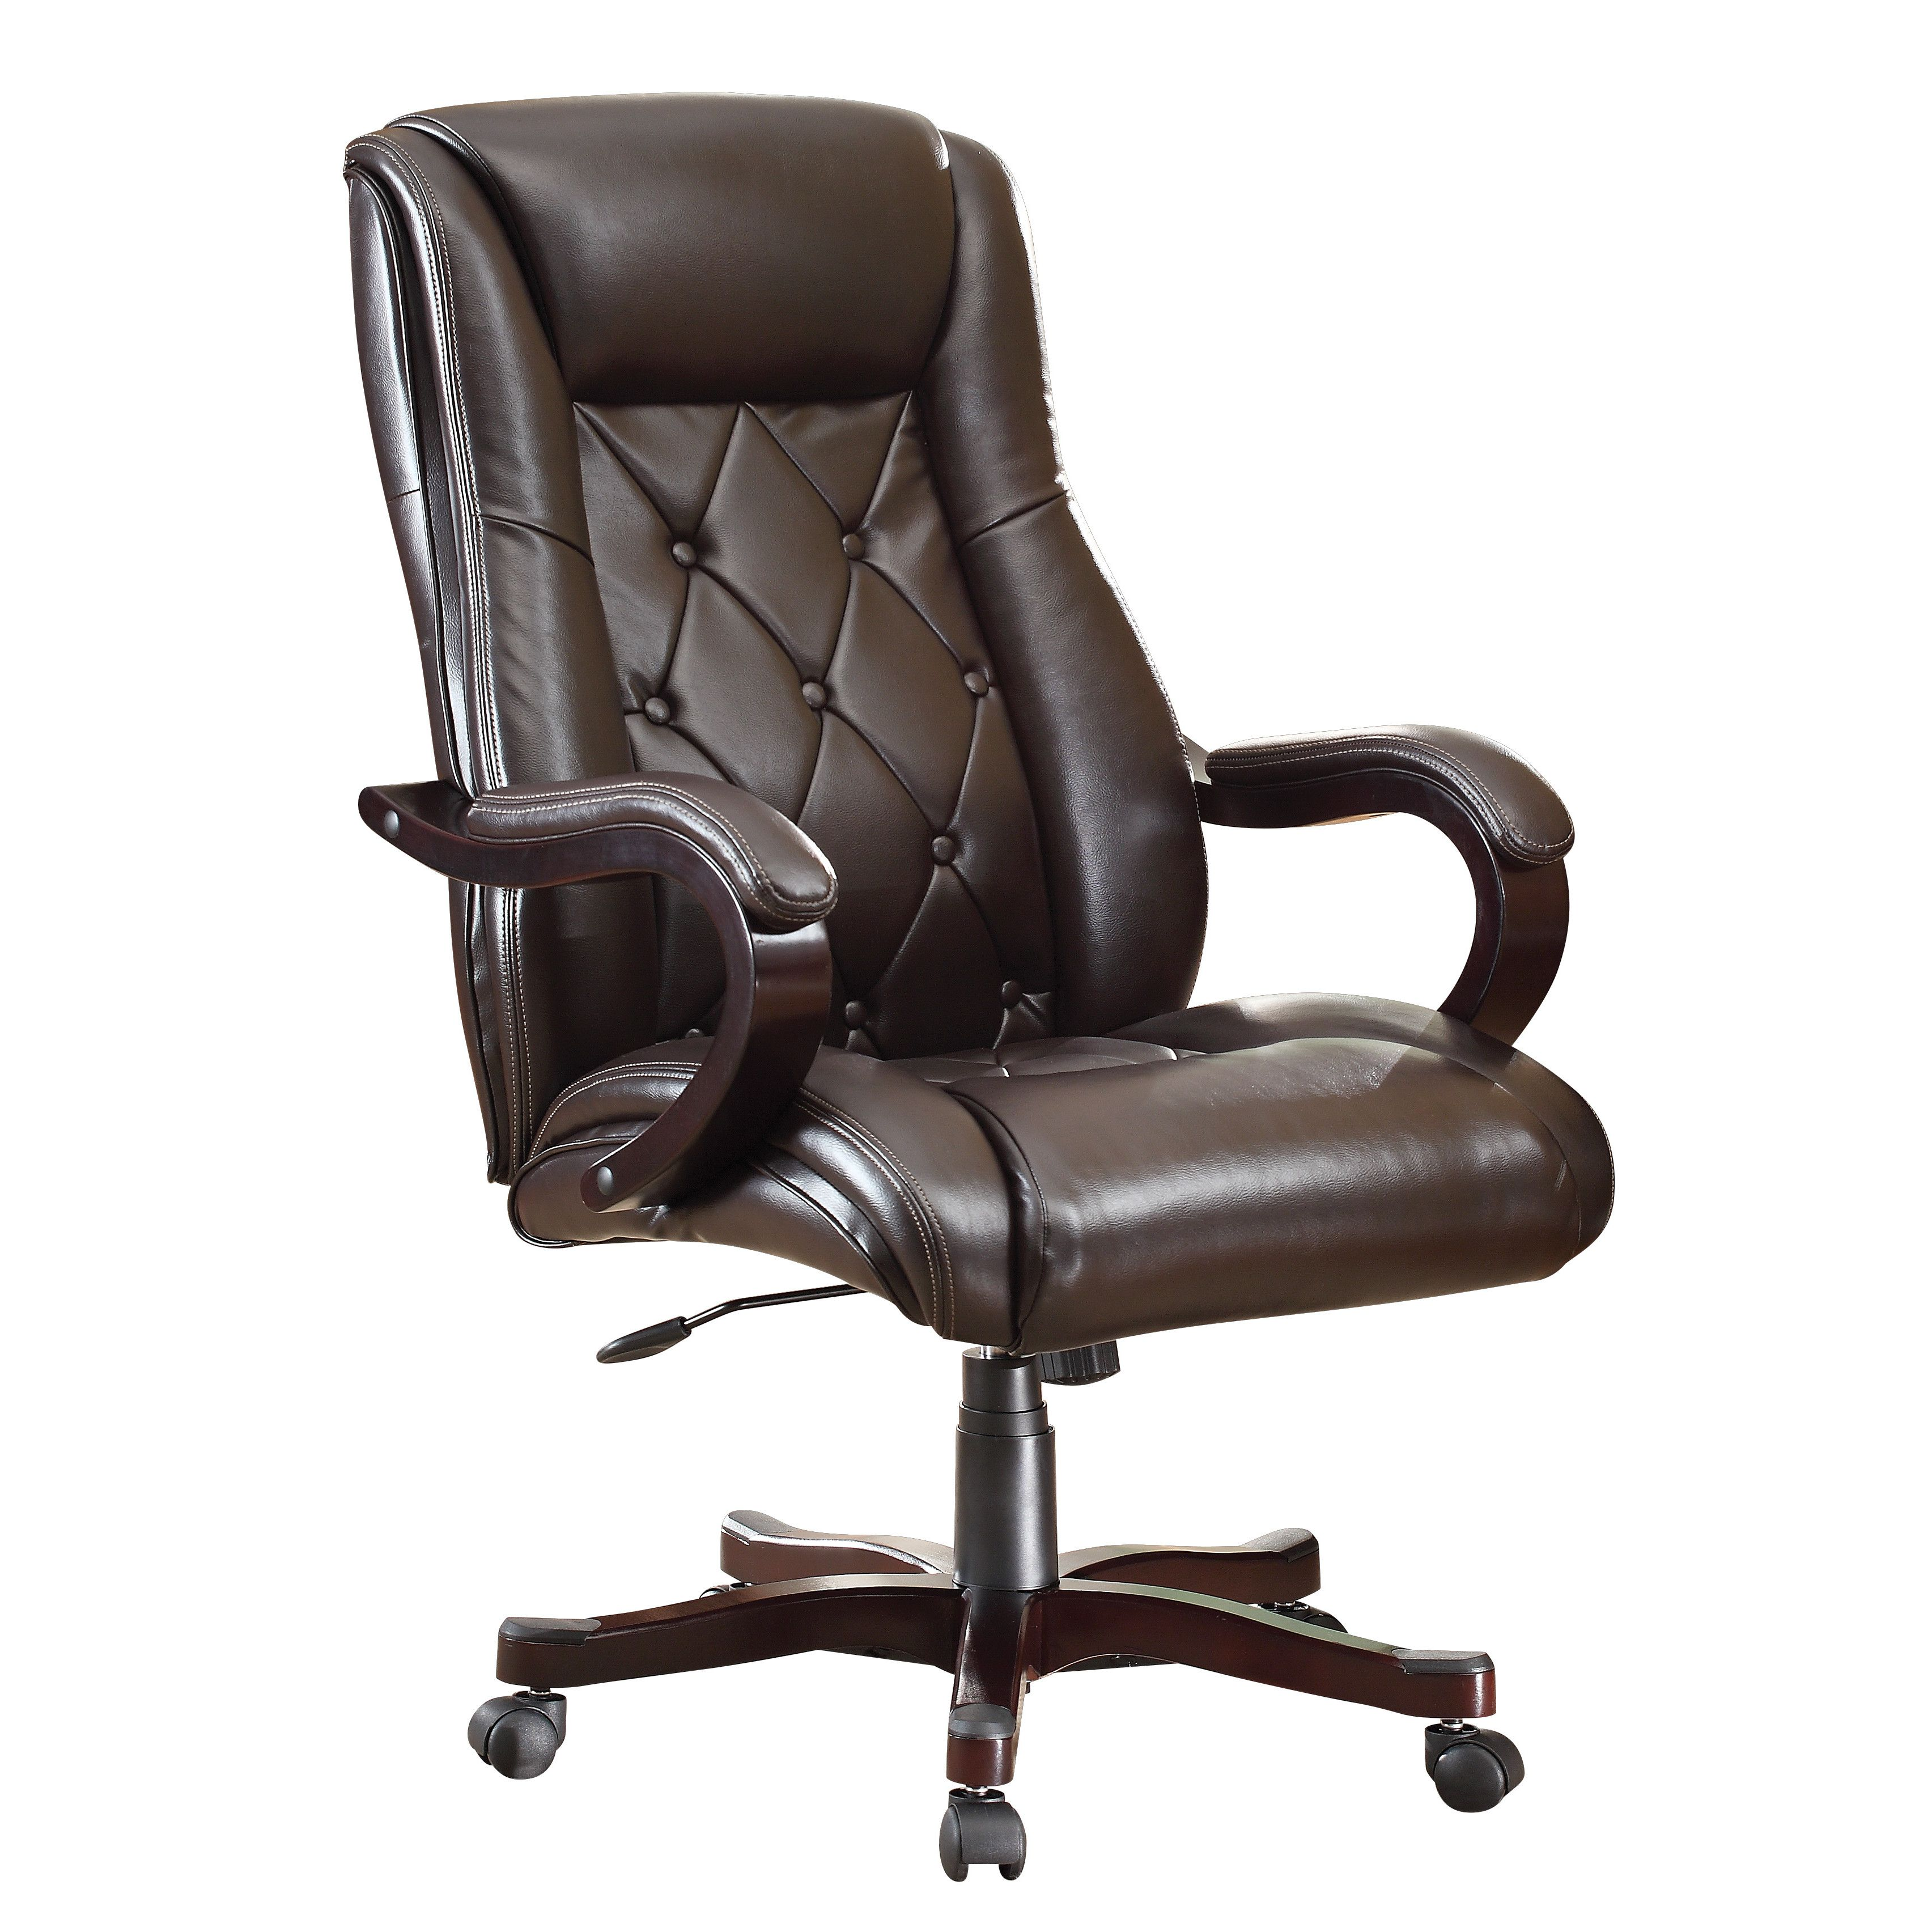 Chefsessel Ikea Executive Leather Office Chair Bürostühle Executive Office